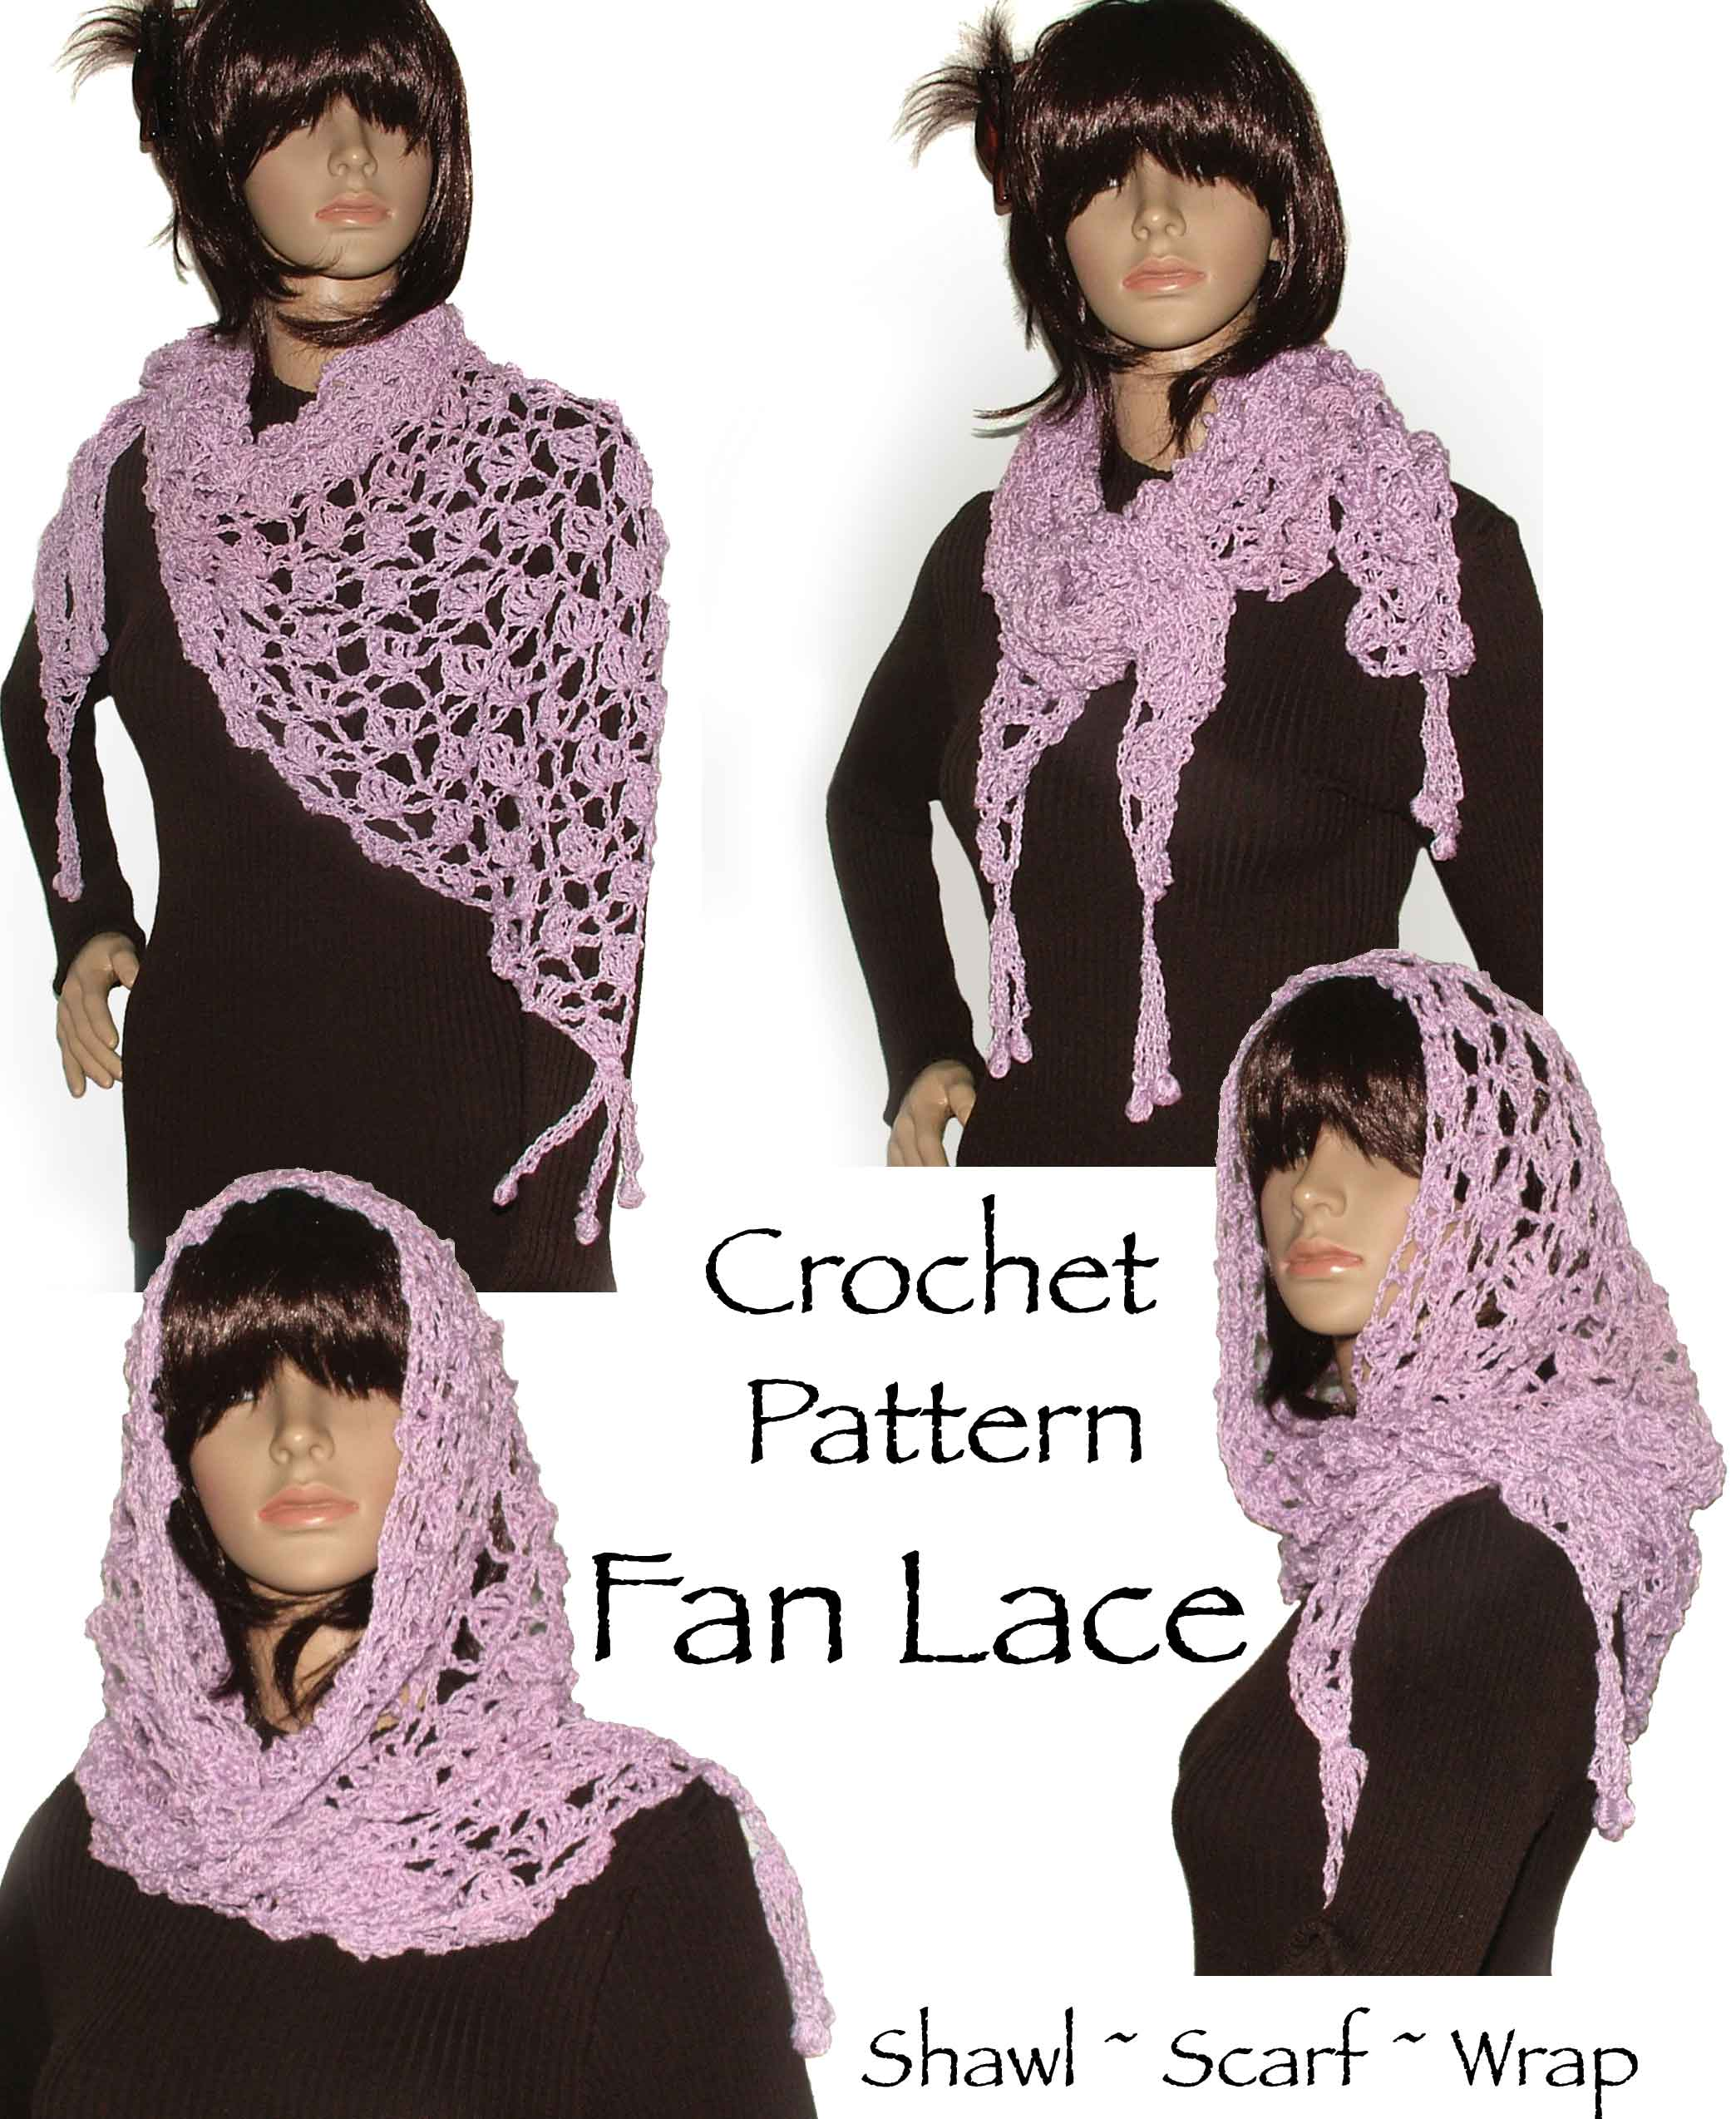 Crochet Fan Lace Shawl Wrap Scarf Pattern Renate Kirkpatricks